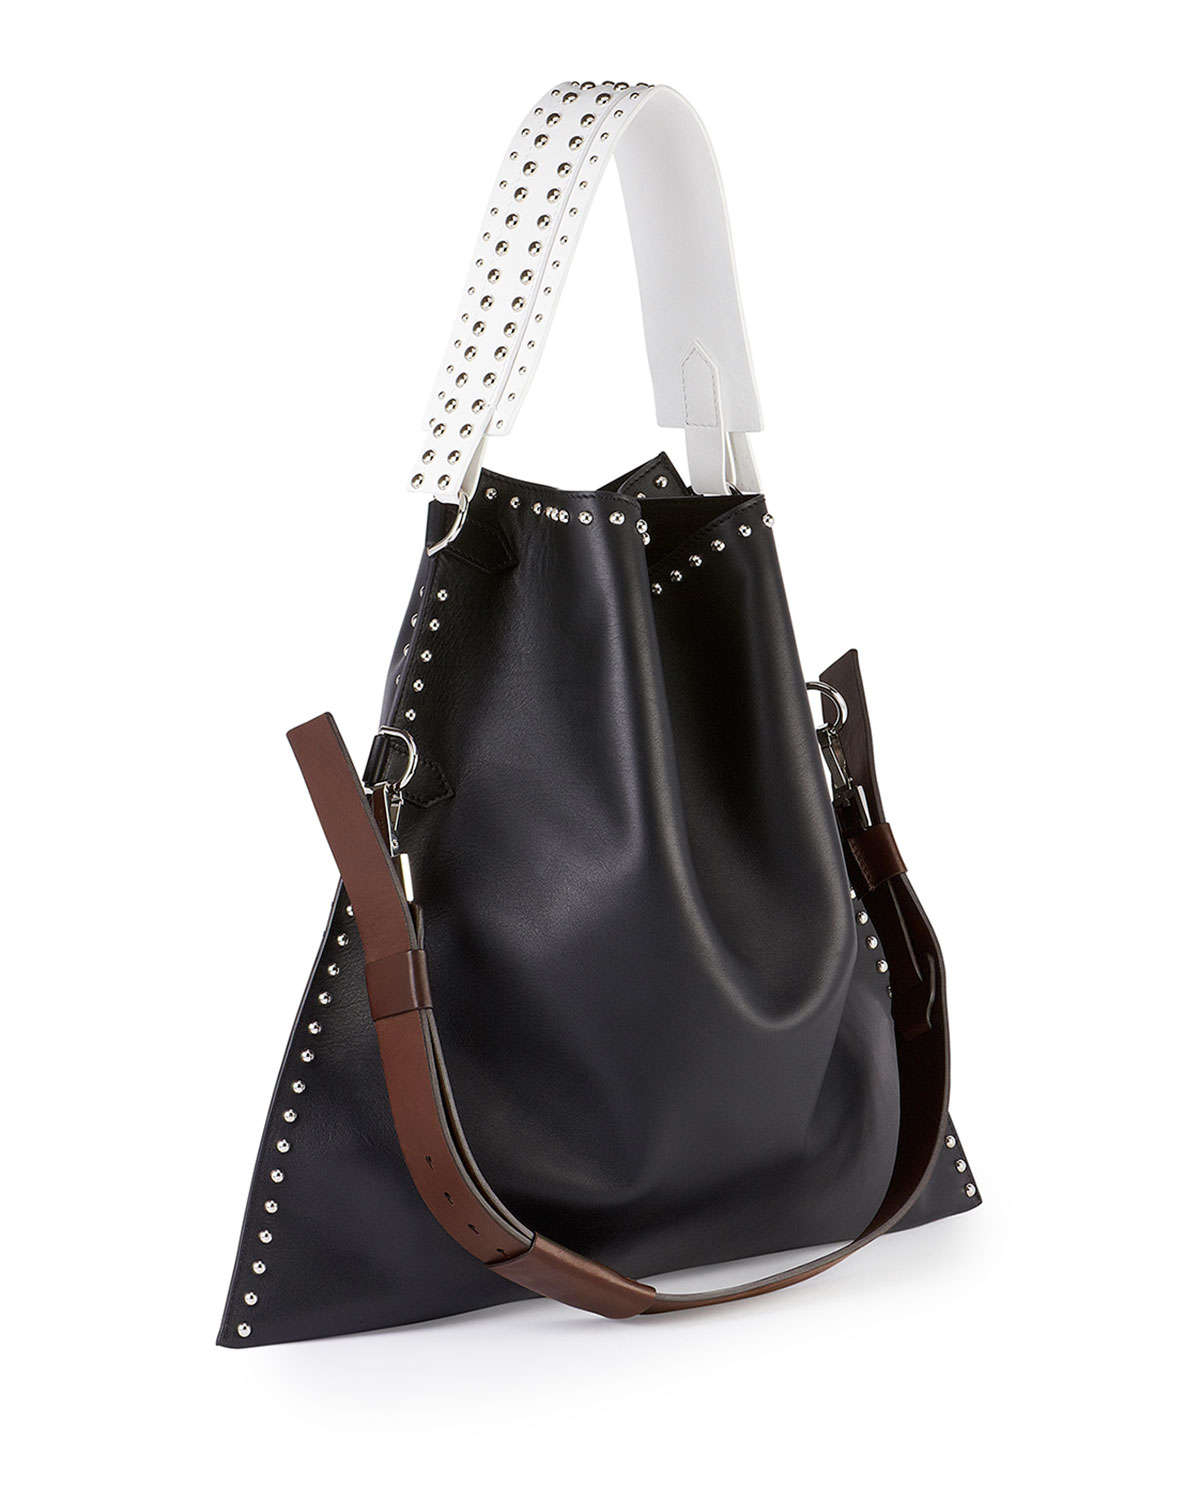 Givenchy Postino Large Flat Foldover Shoulder Bag in Black | Lyst